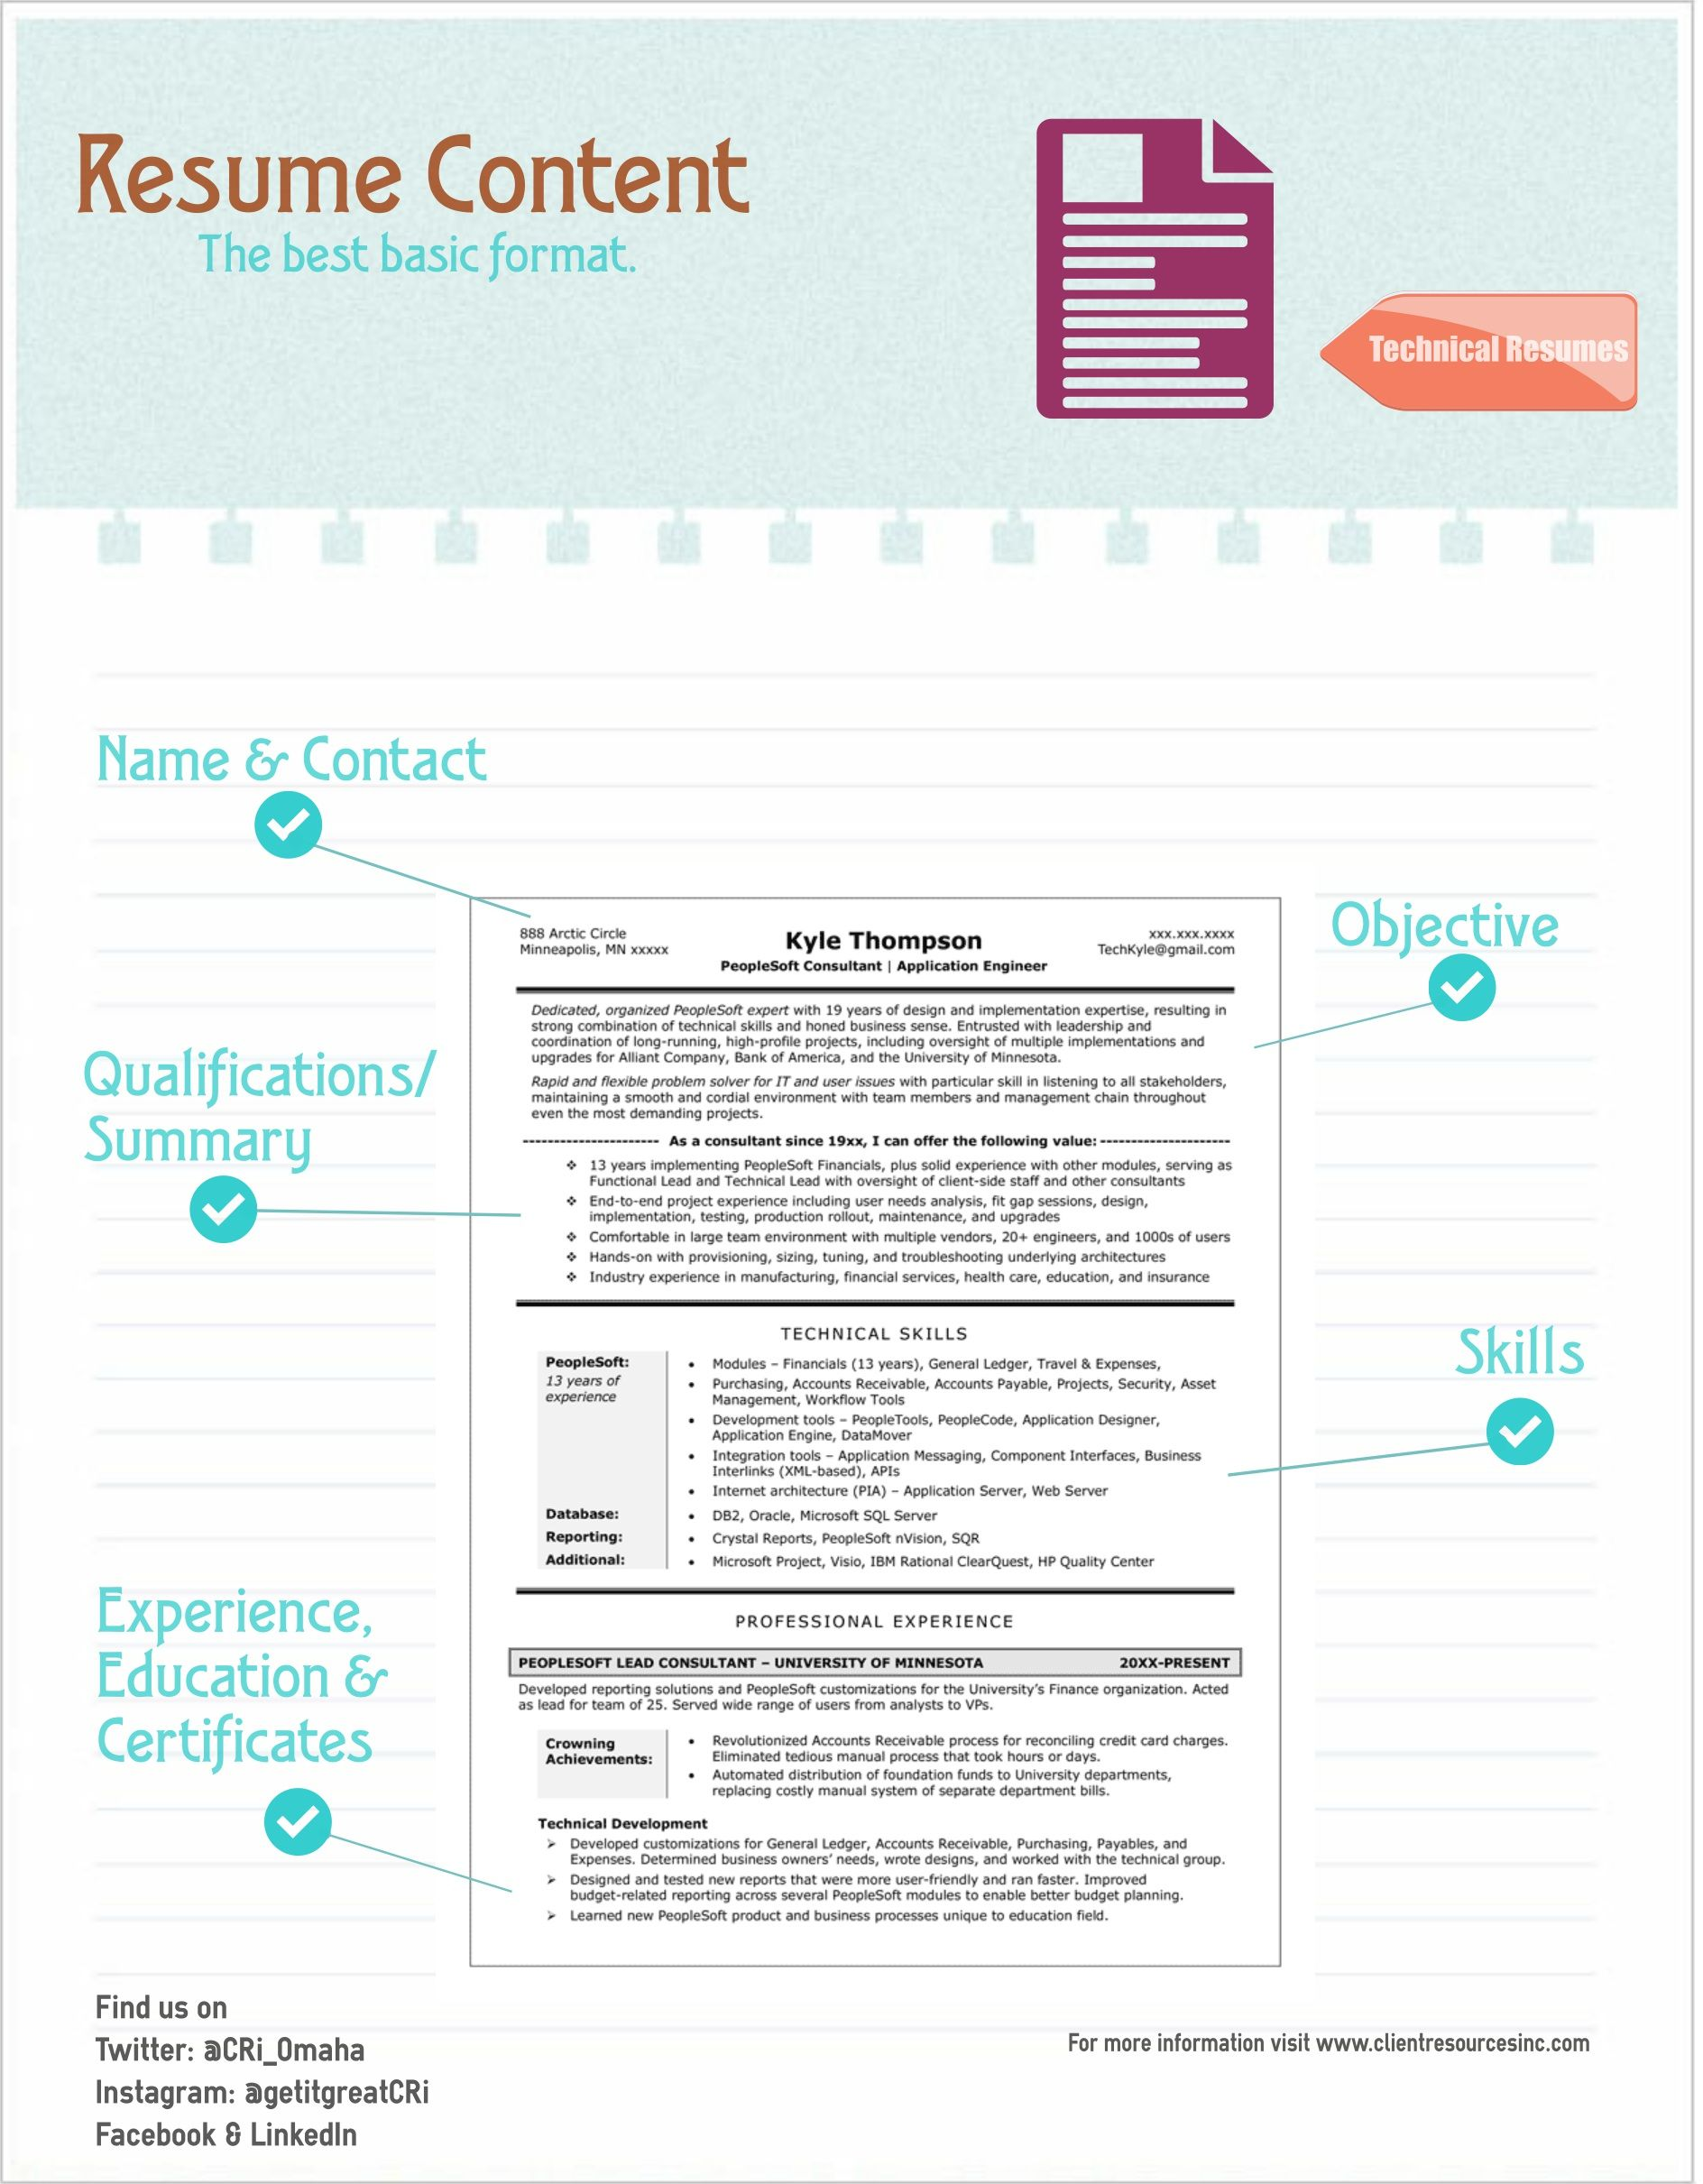 Technical Resume Content The Best Basic Format What To Include